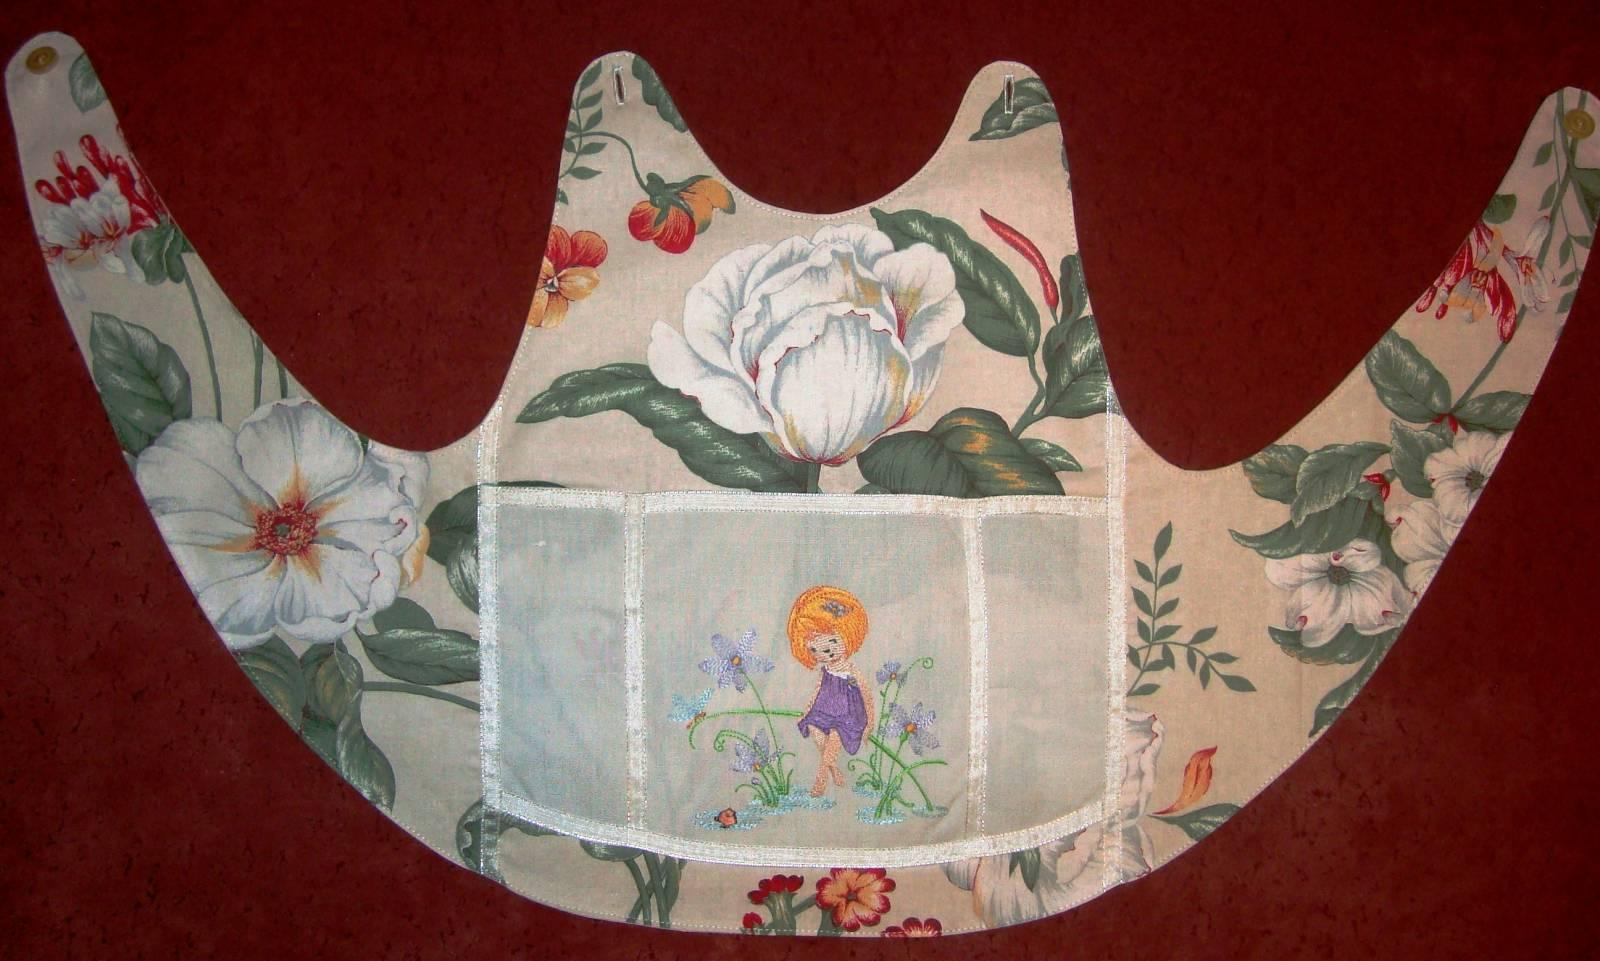 Apron embroidered with the baby machine embroidery design